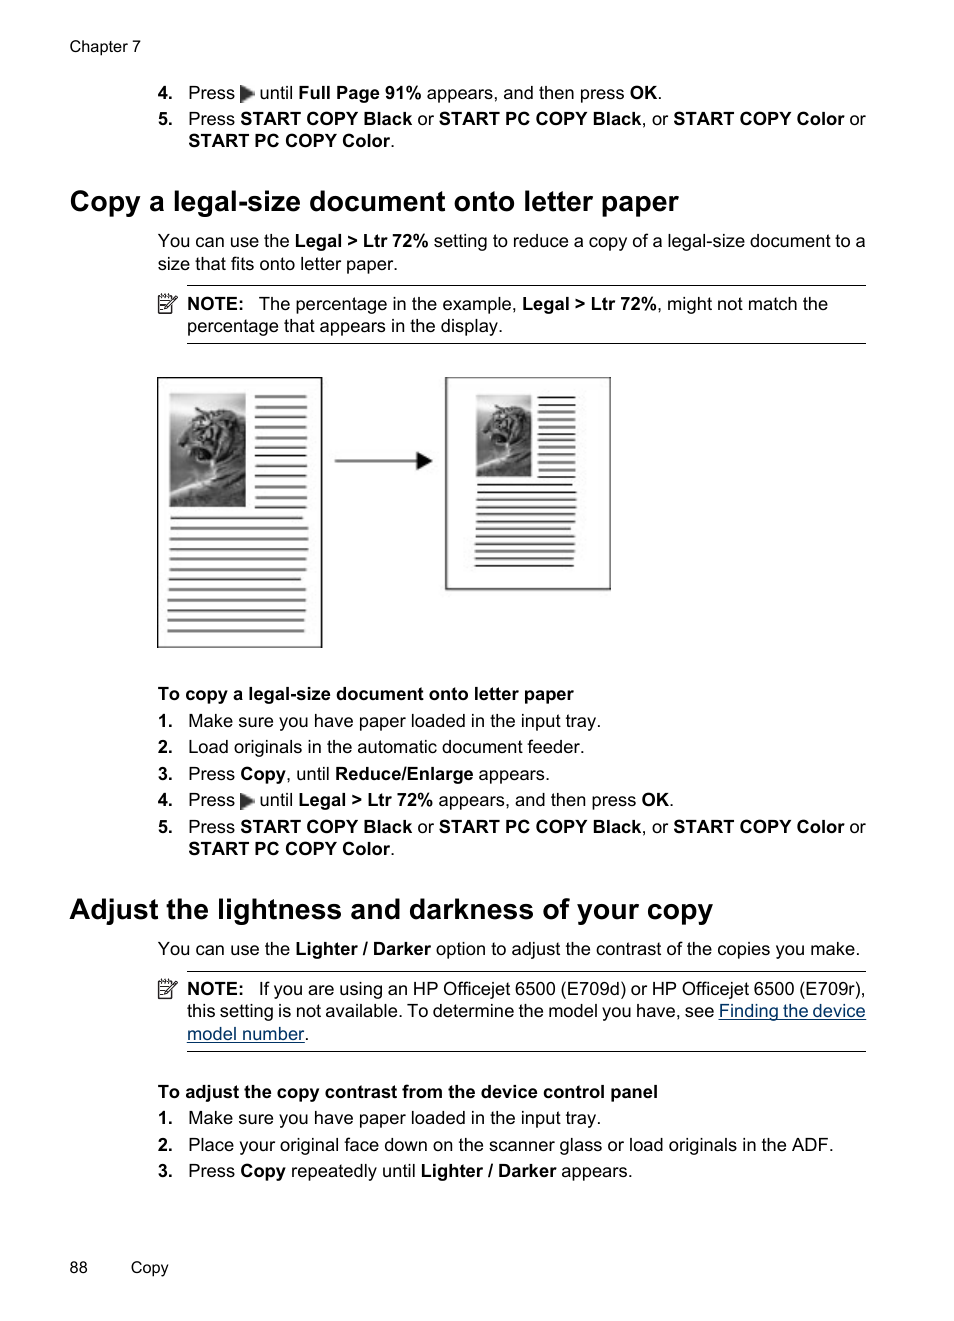 Copy a legal-size document onto letter paper, Adjust the lightness and  darkness of your copy | HP Officejet 6500 User Manual | Page 92 / 294